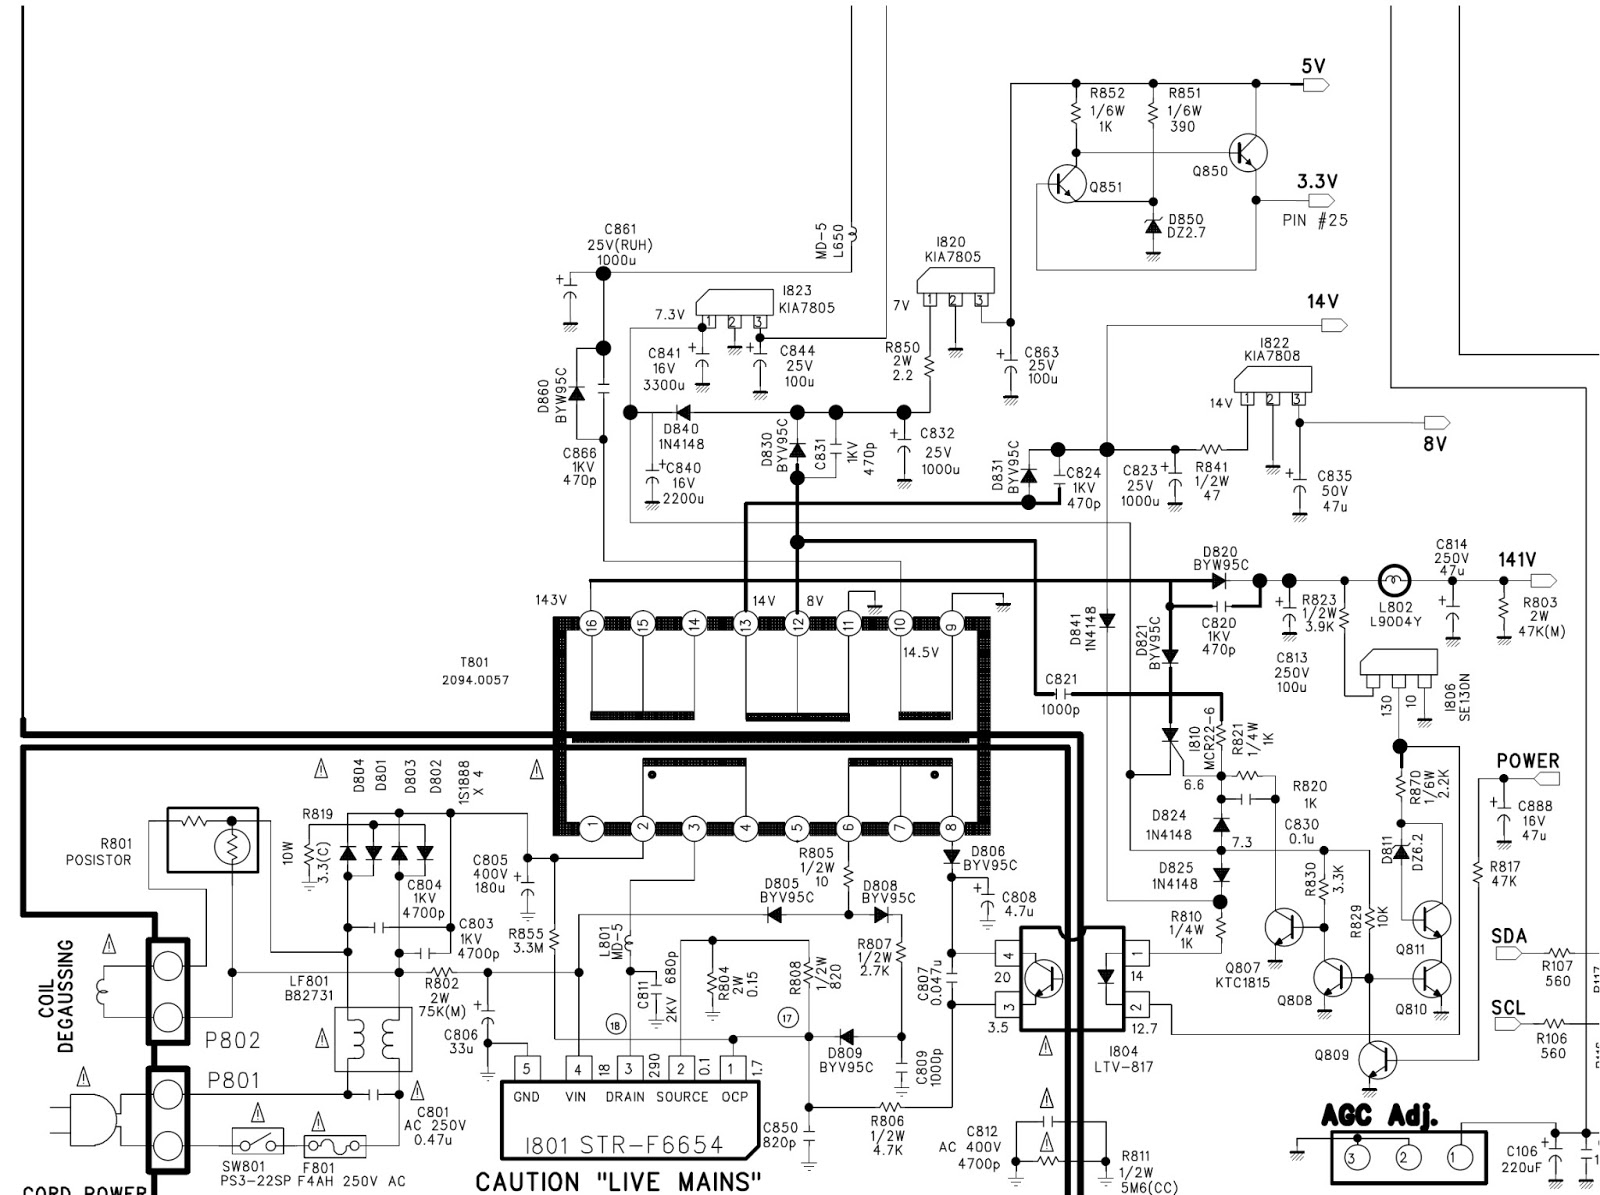 str - f6654 based smps power supply schematic diagram